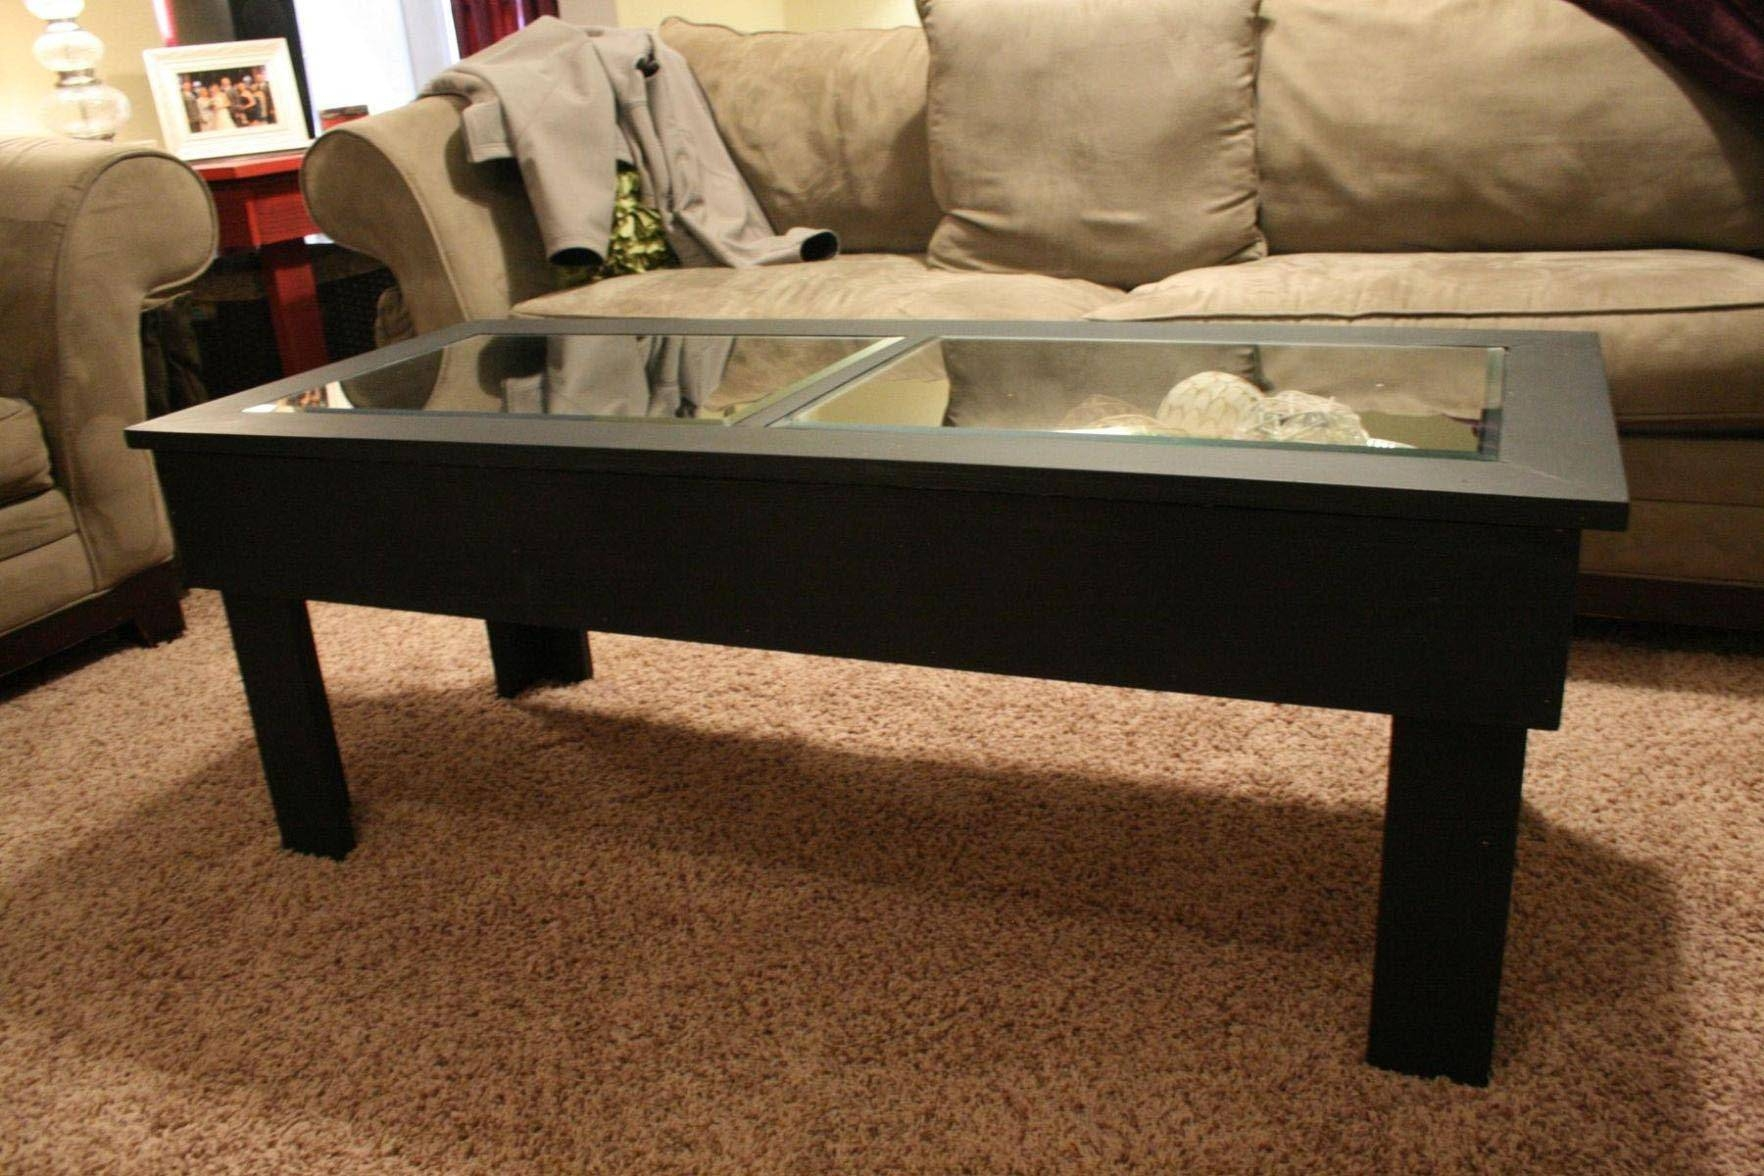 Coffee Table Display Case Glass Top Ikea | Coffee Table Design Ideas Inside Coffee Tables With Glass Top Display Drawer (View 3 of 30)